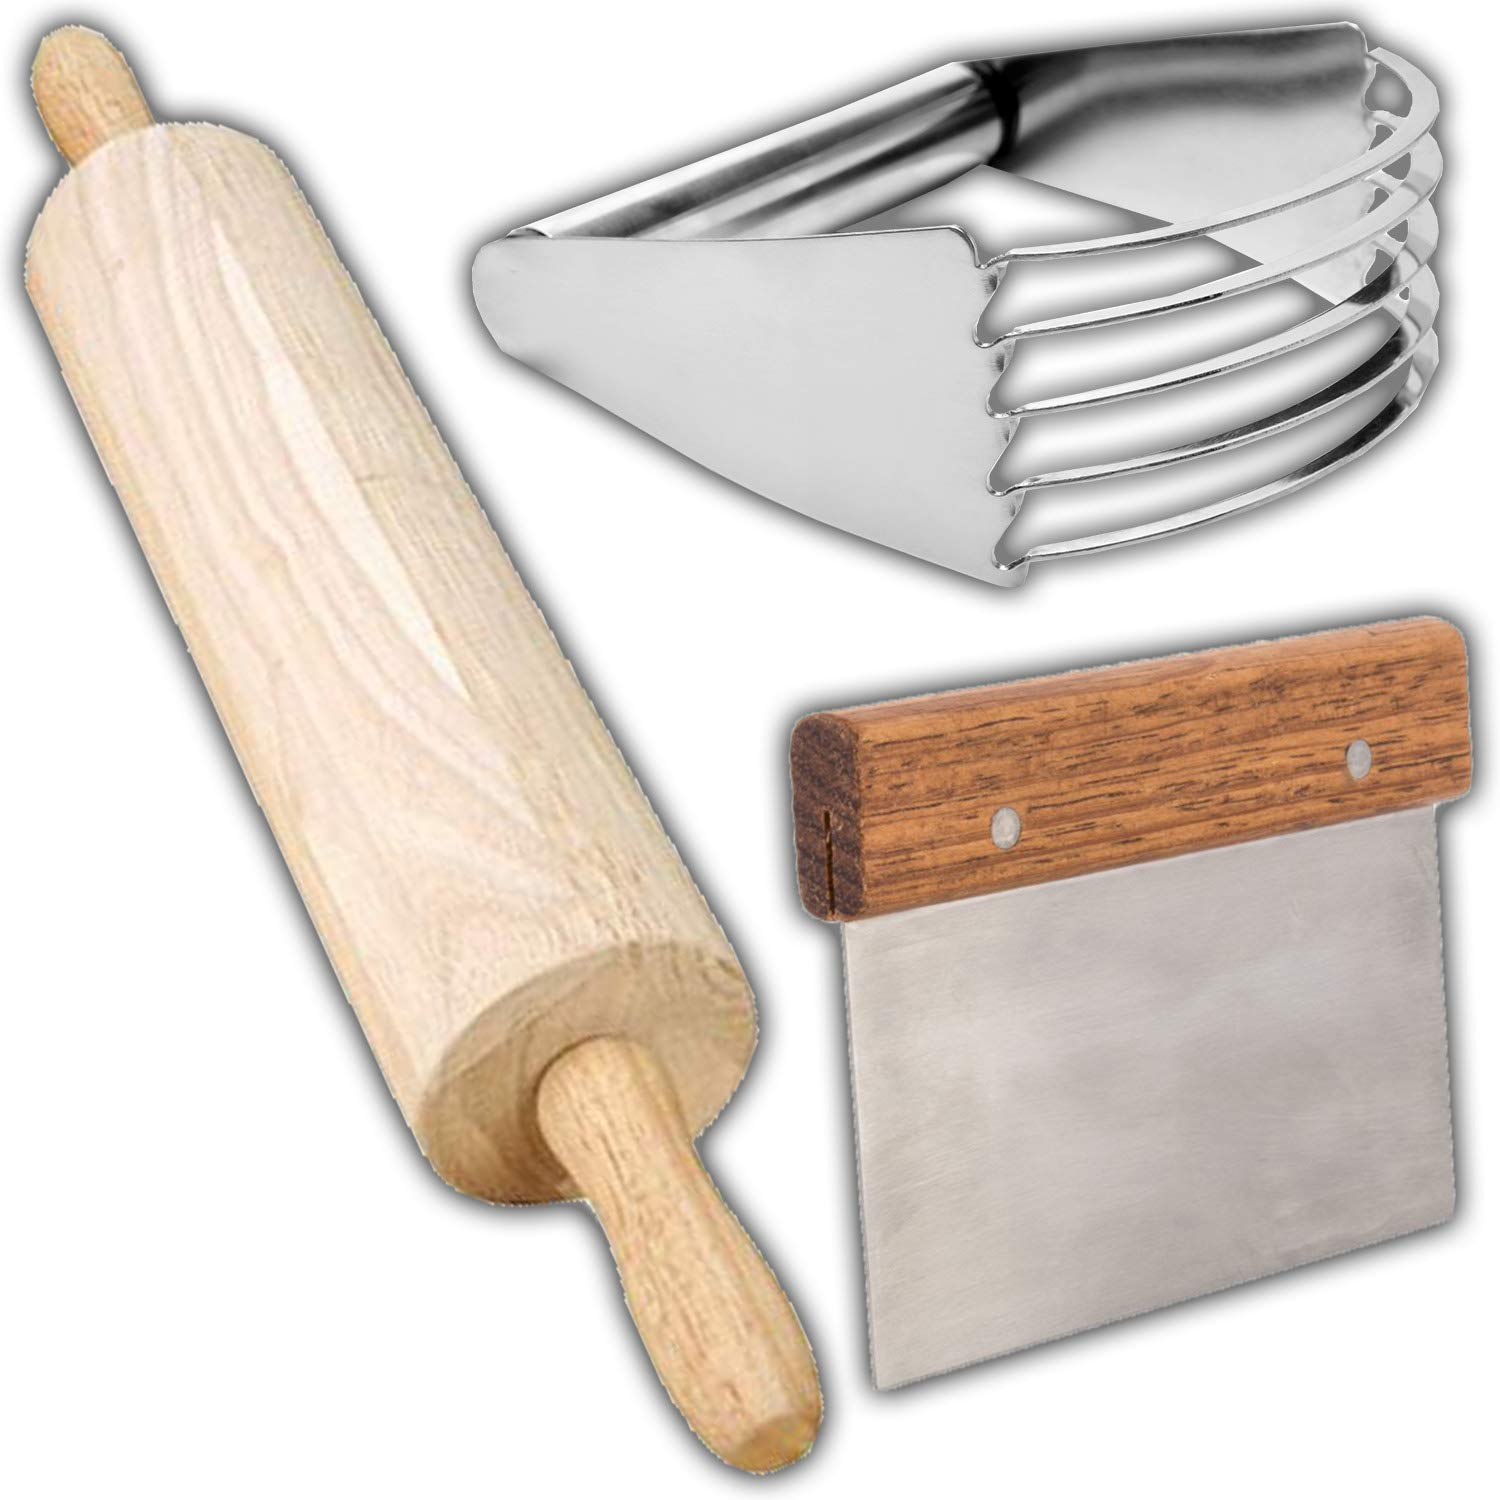 Pastry Baking Set - 13'' Wooden Rolling Pin, Dough Scraper and Blender Stainless Steel, Professional Quality Biscuit Blender, pie cutter, Heavy Duty Kitchen Baking Tools, for commercial and home use. by HeroFiber